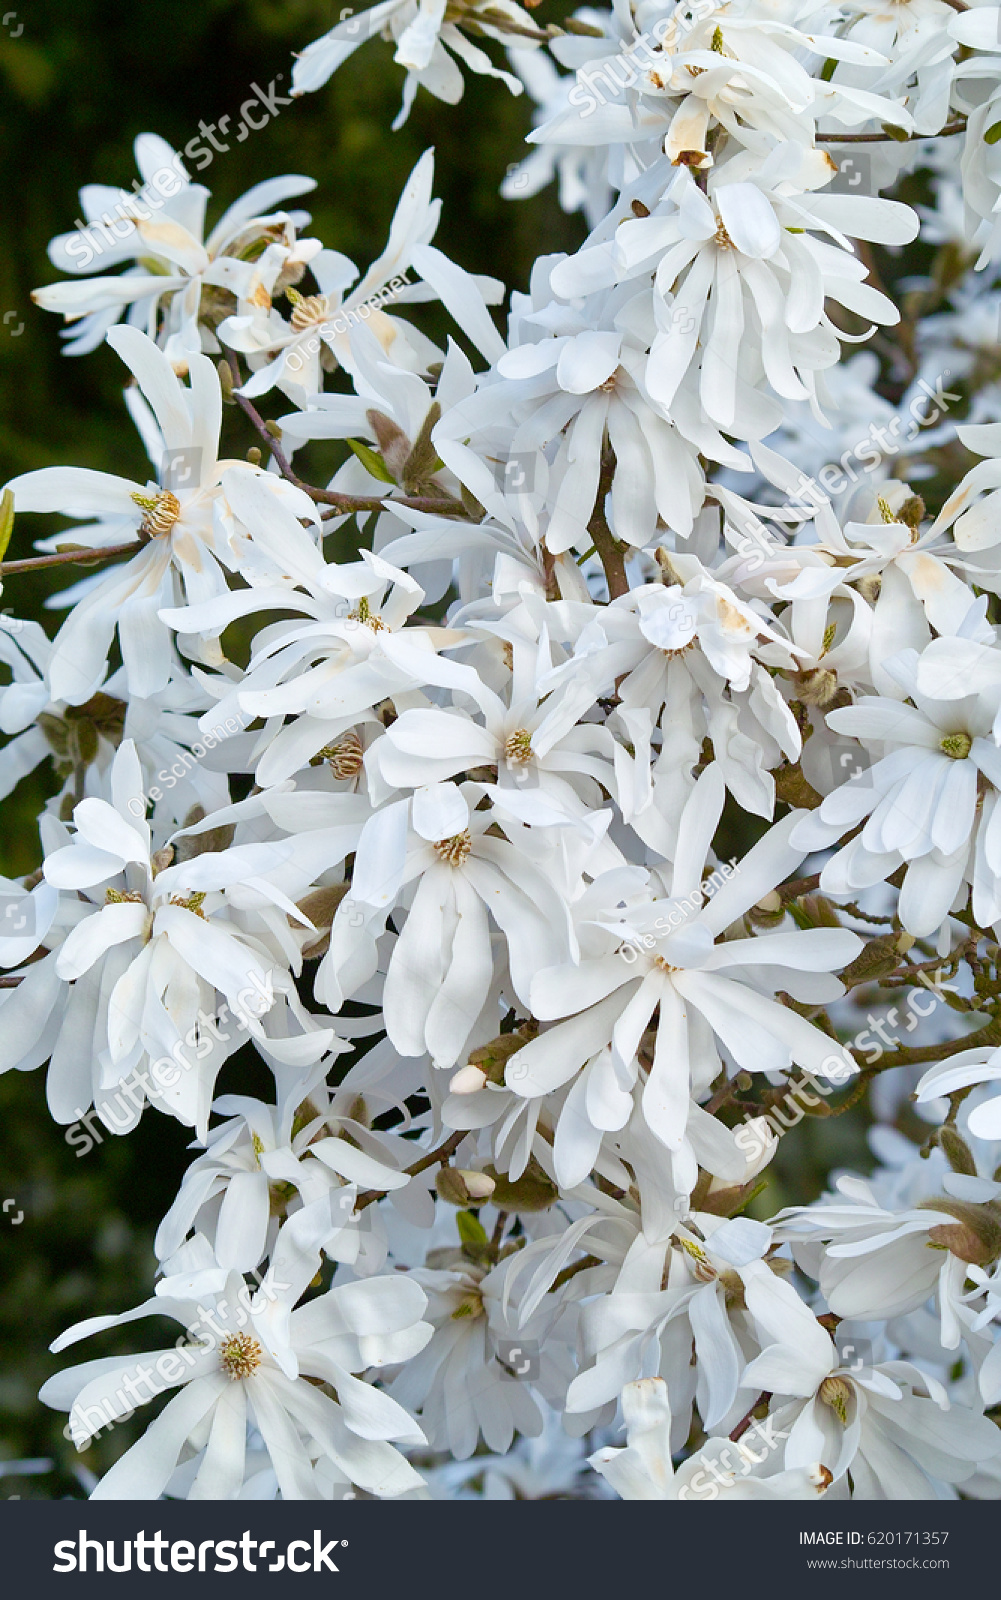 Flowers Of A Blooming White Star Magnolia Stellata Shrub In Spring